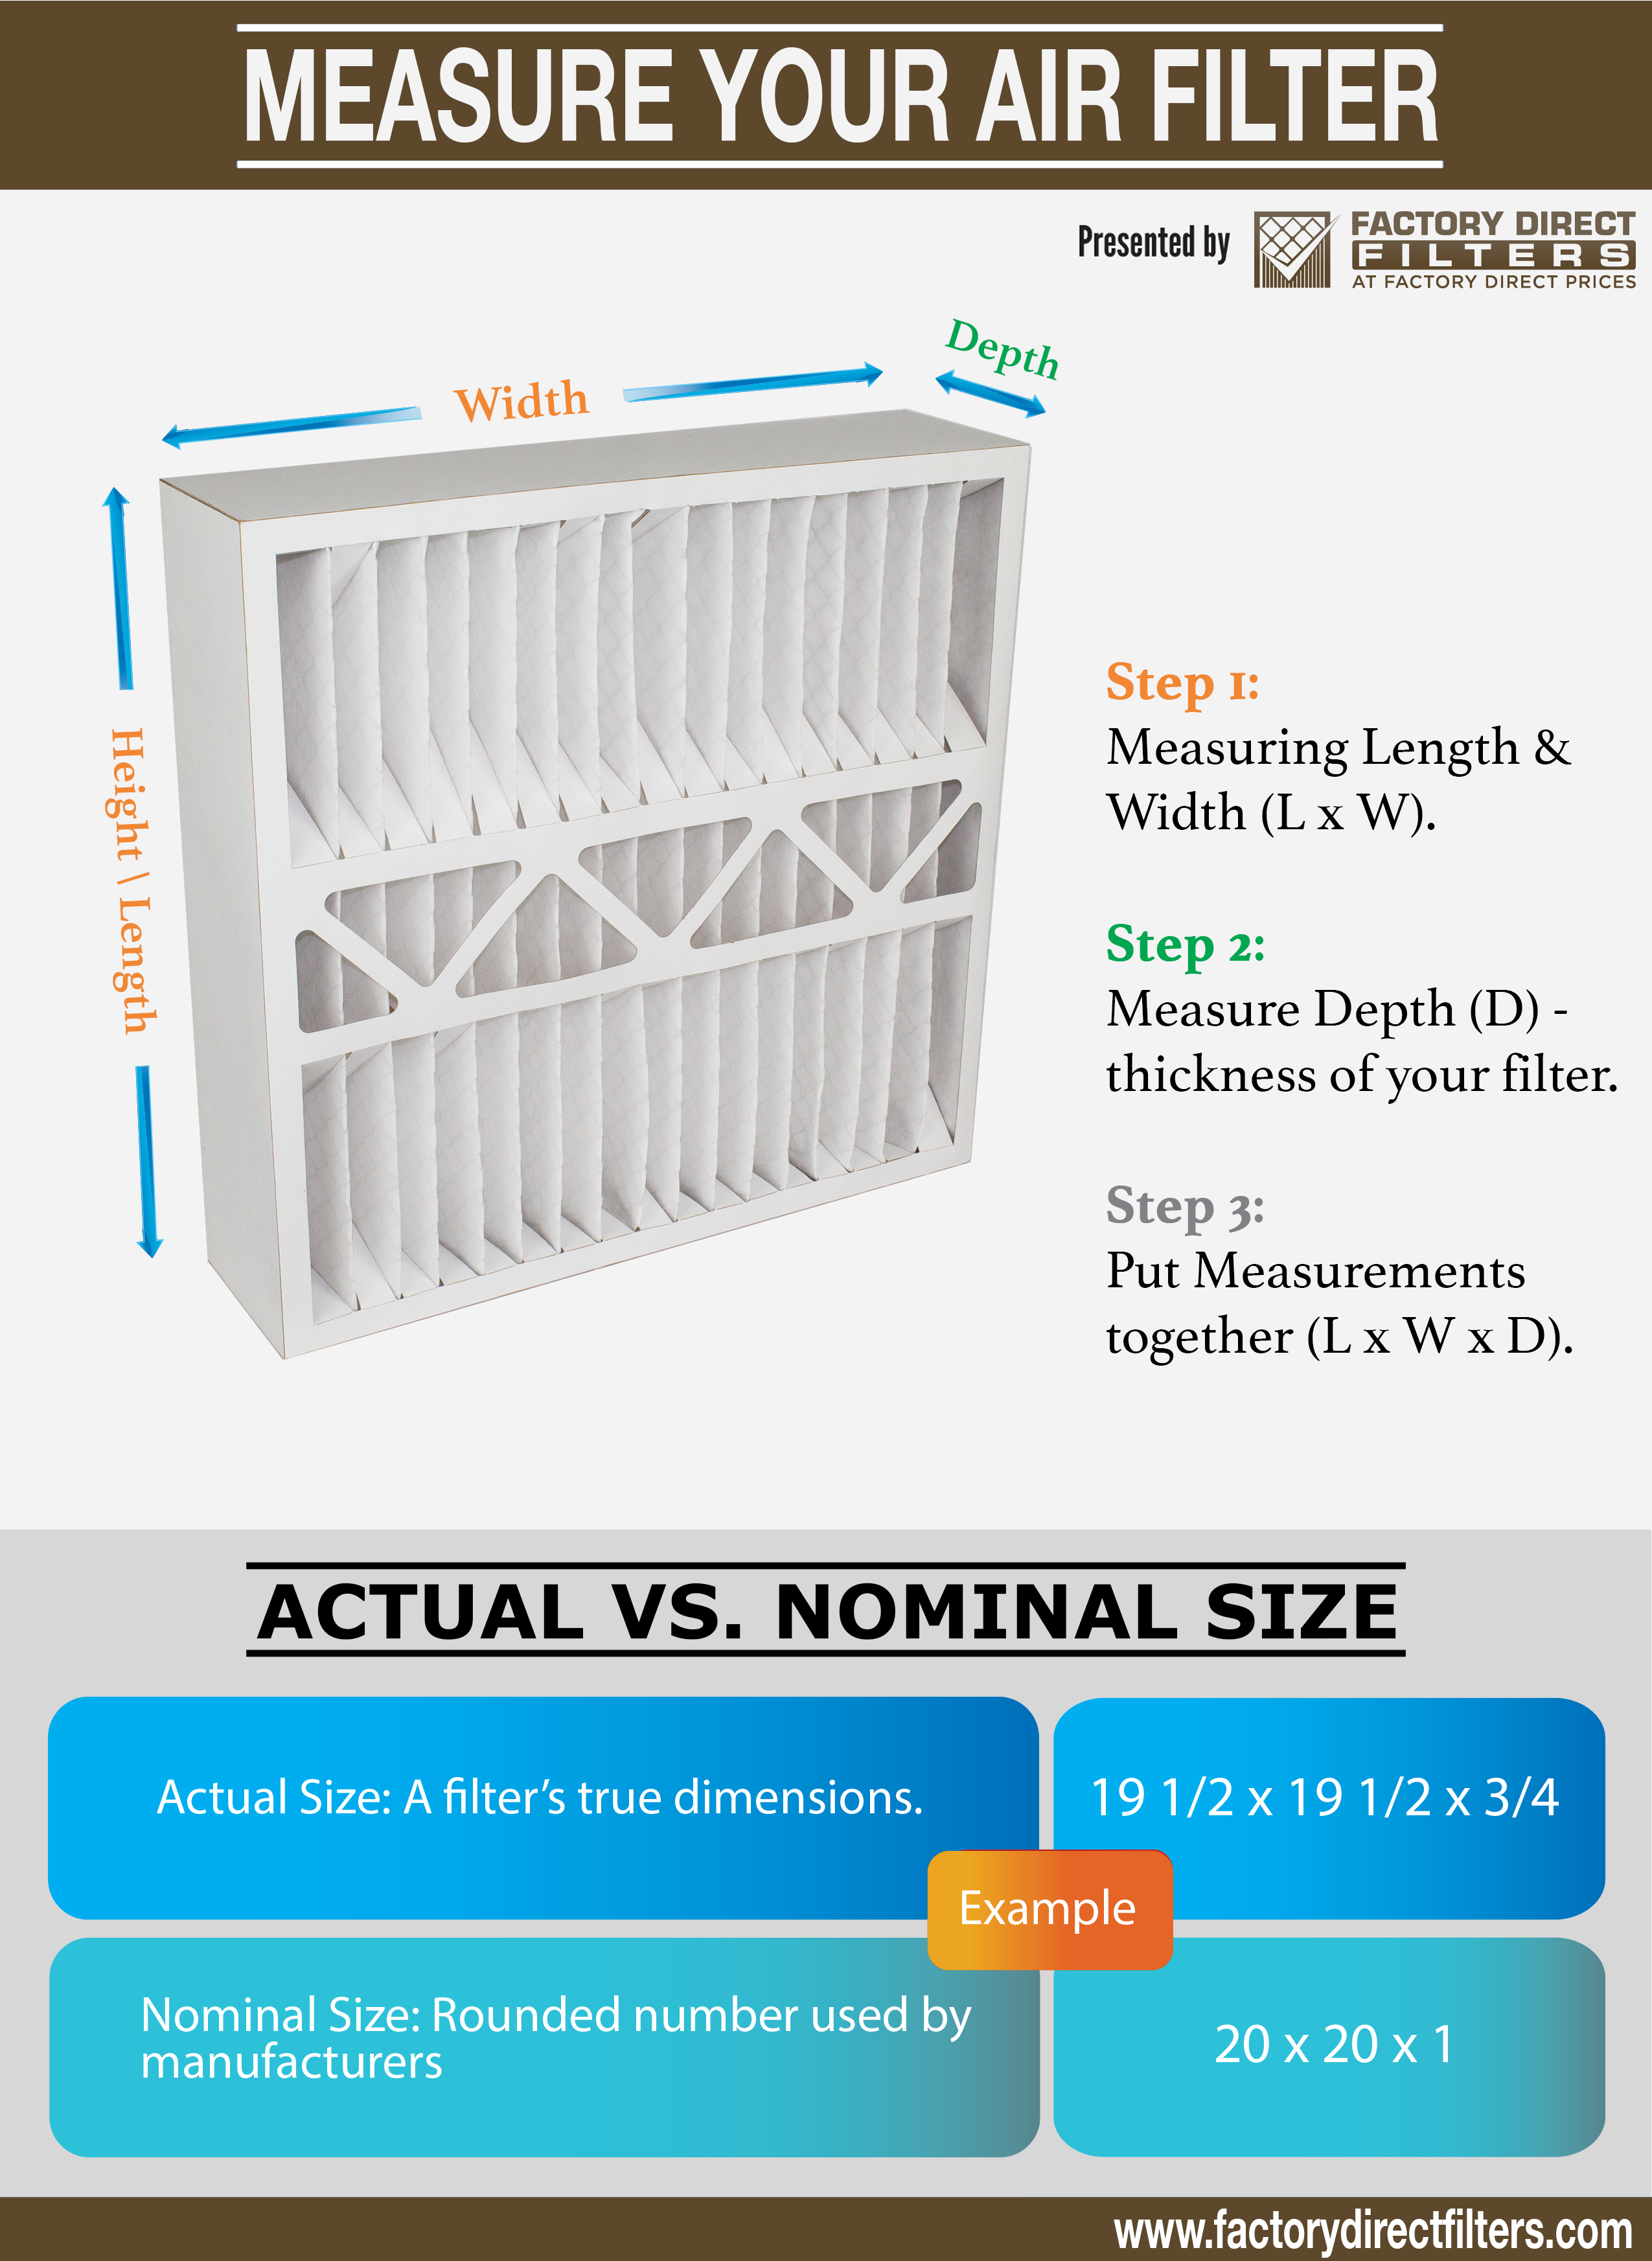 How to measure your air filter